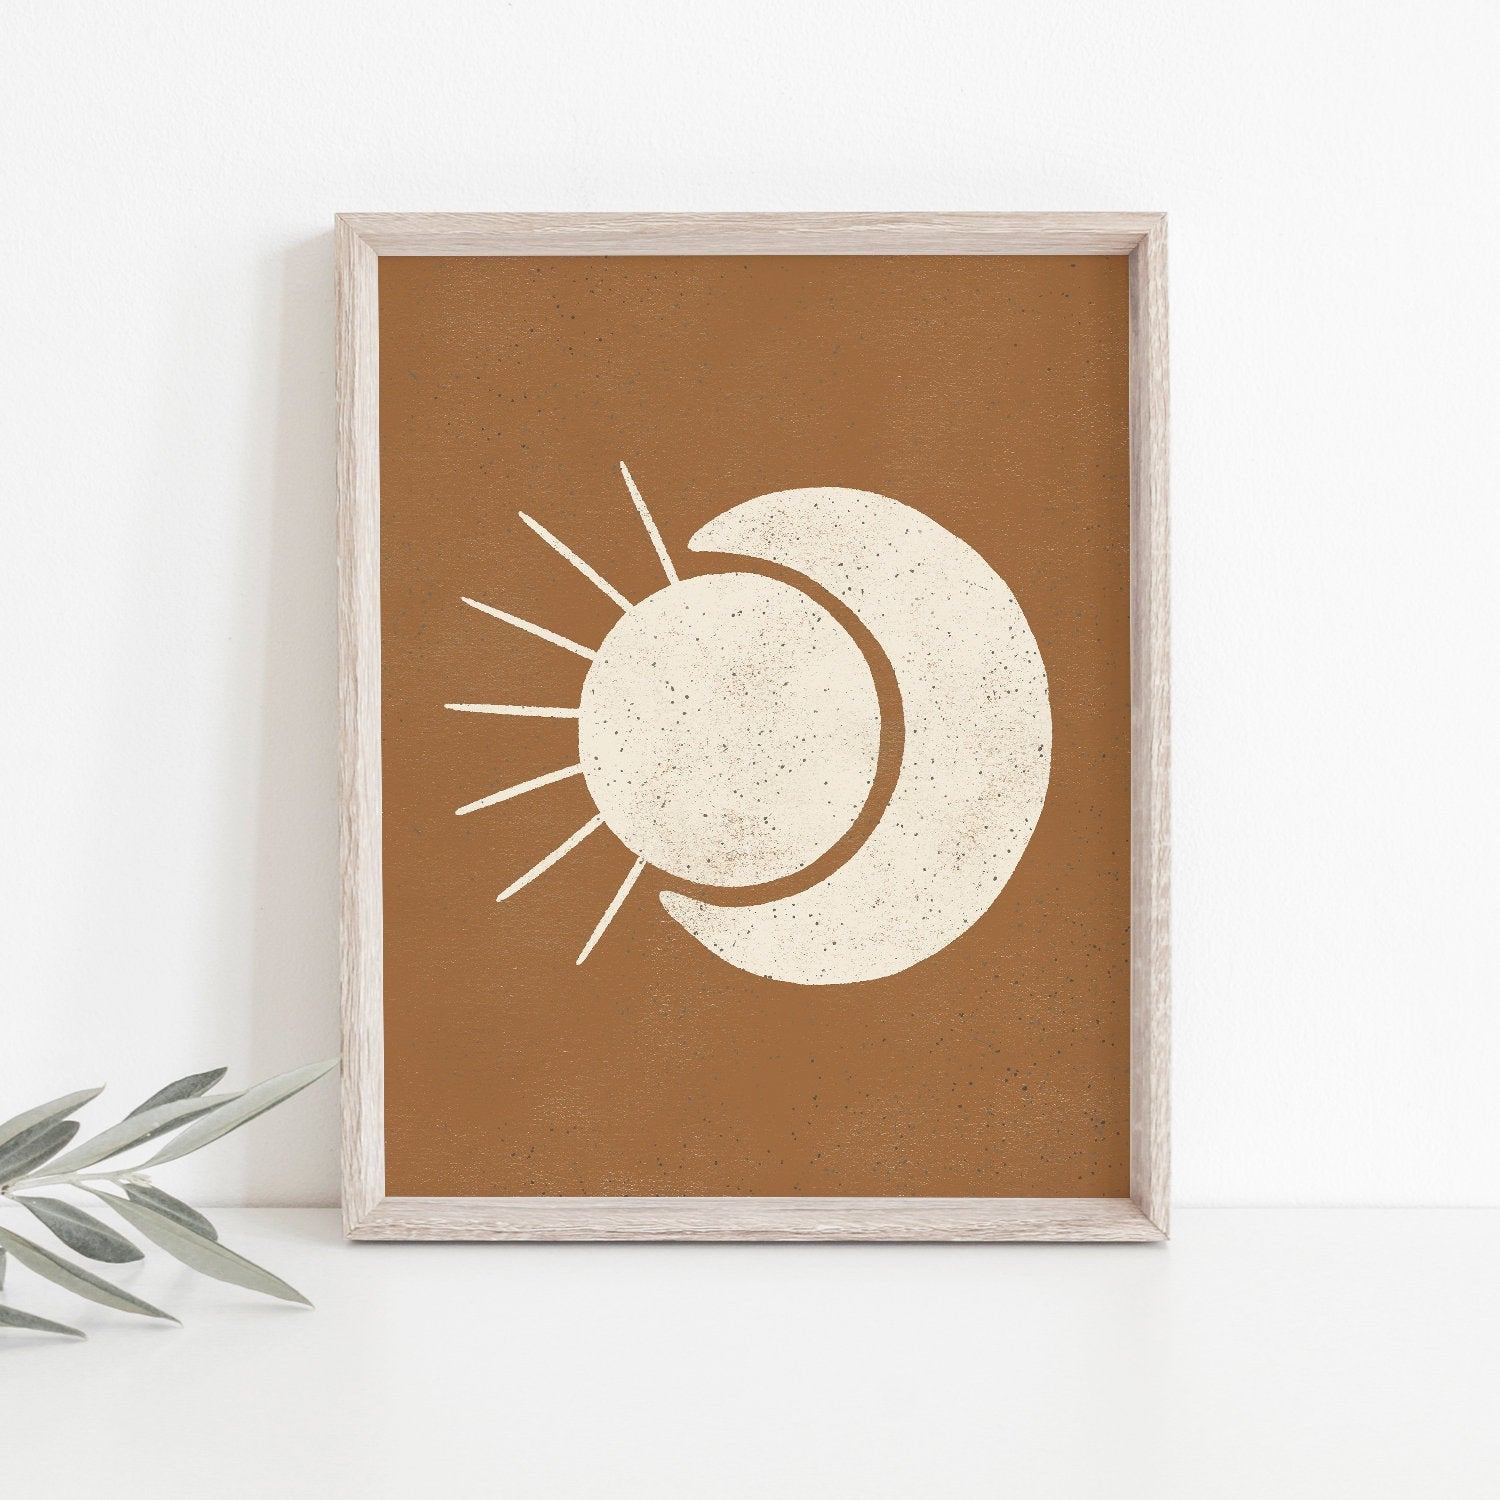 Sun Moon Wall Art Print - Terracotta + Cream | Minimalist Art | Moon Art | Sun Art | Terracotta Art | Earthy Art | 5x7 8x10 11x14